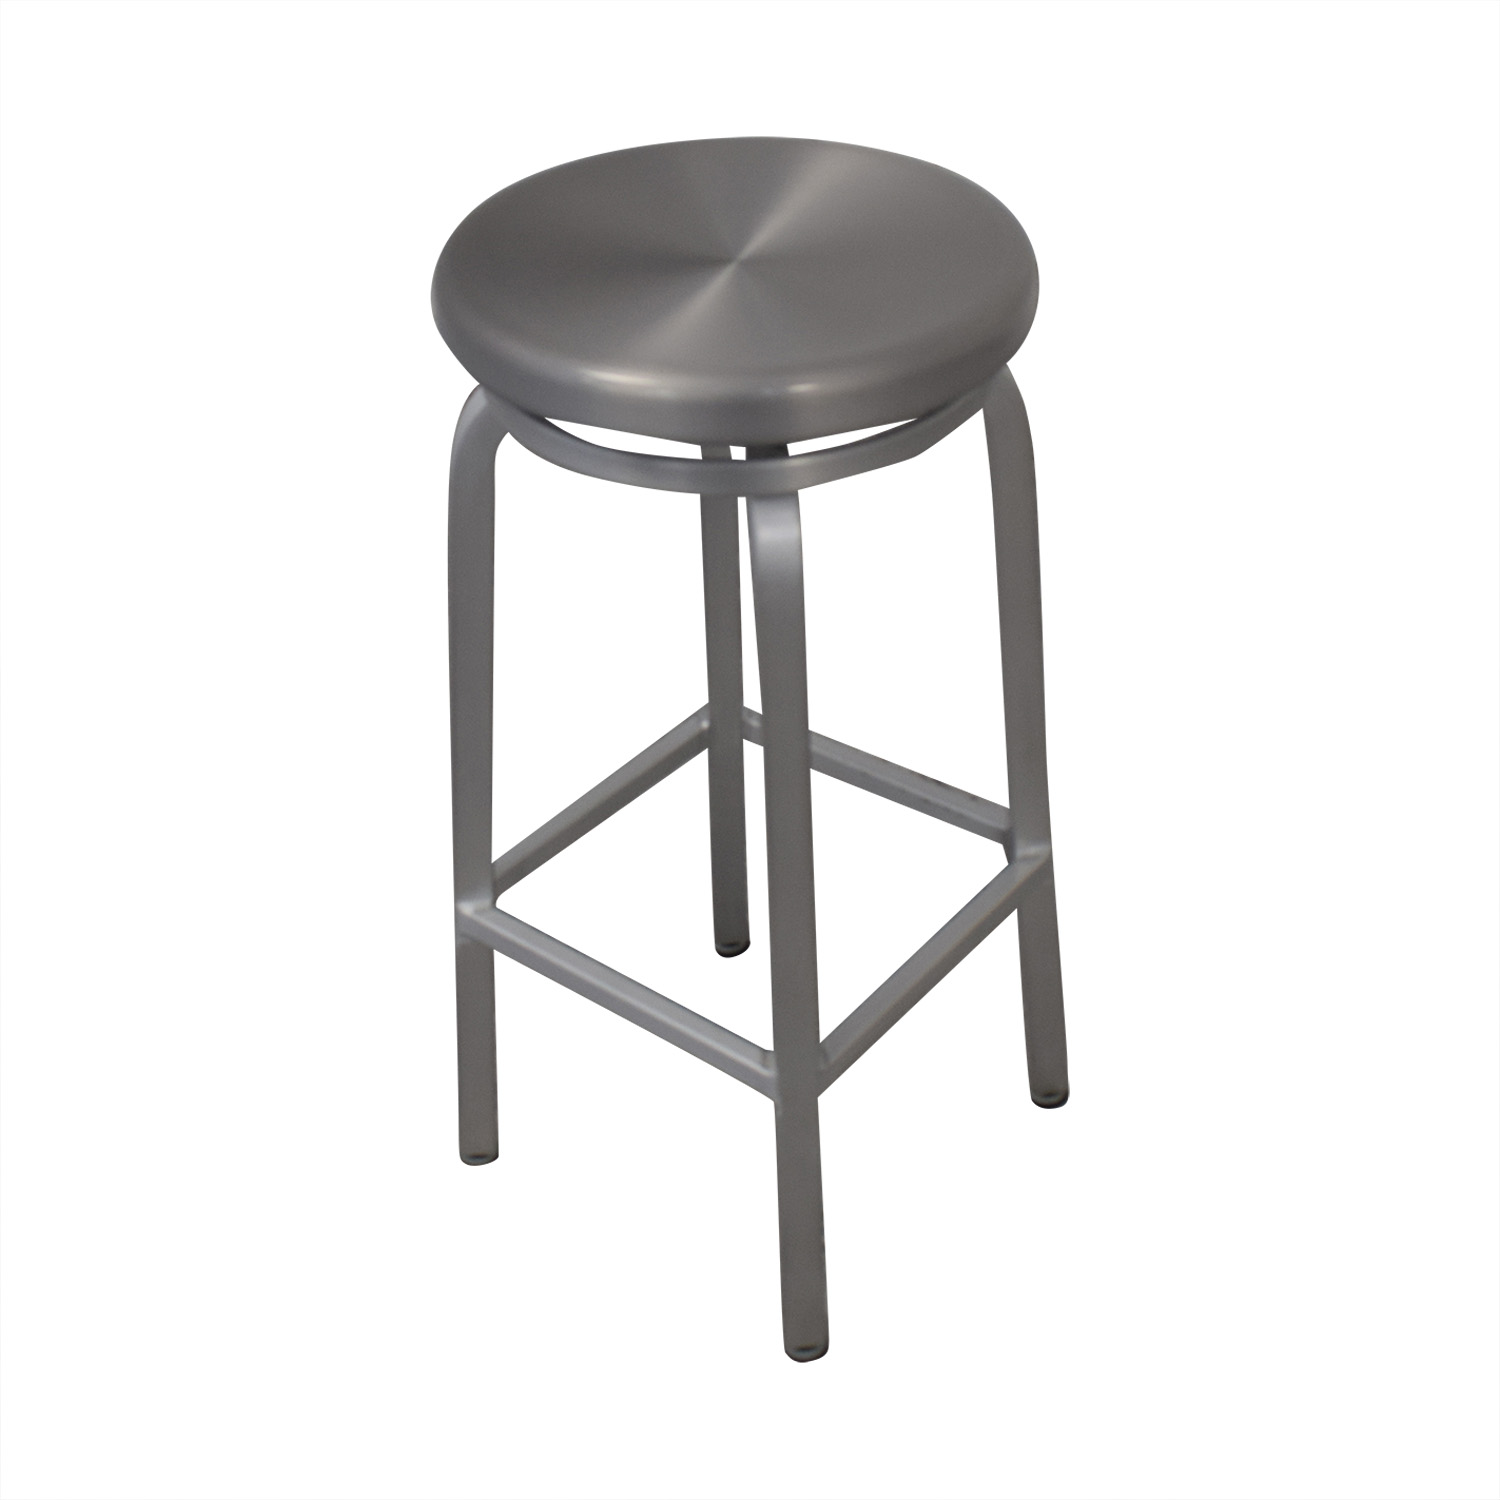 buy Crate & Barrel Stainless Steel Stools Crate & Barrel Stools